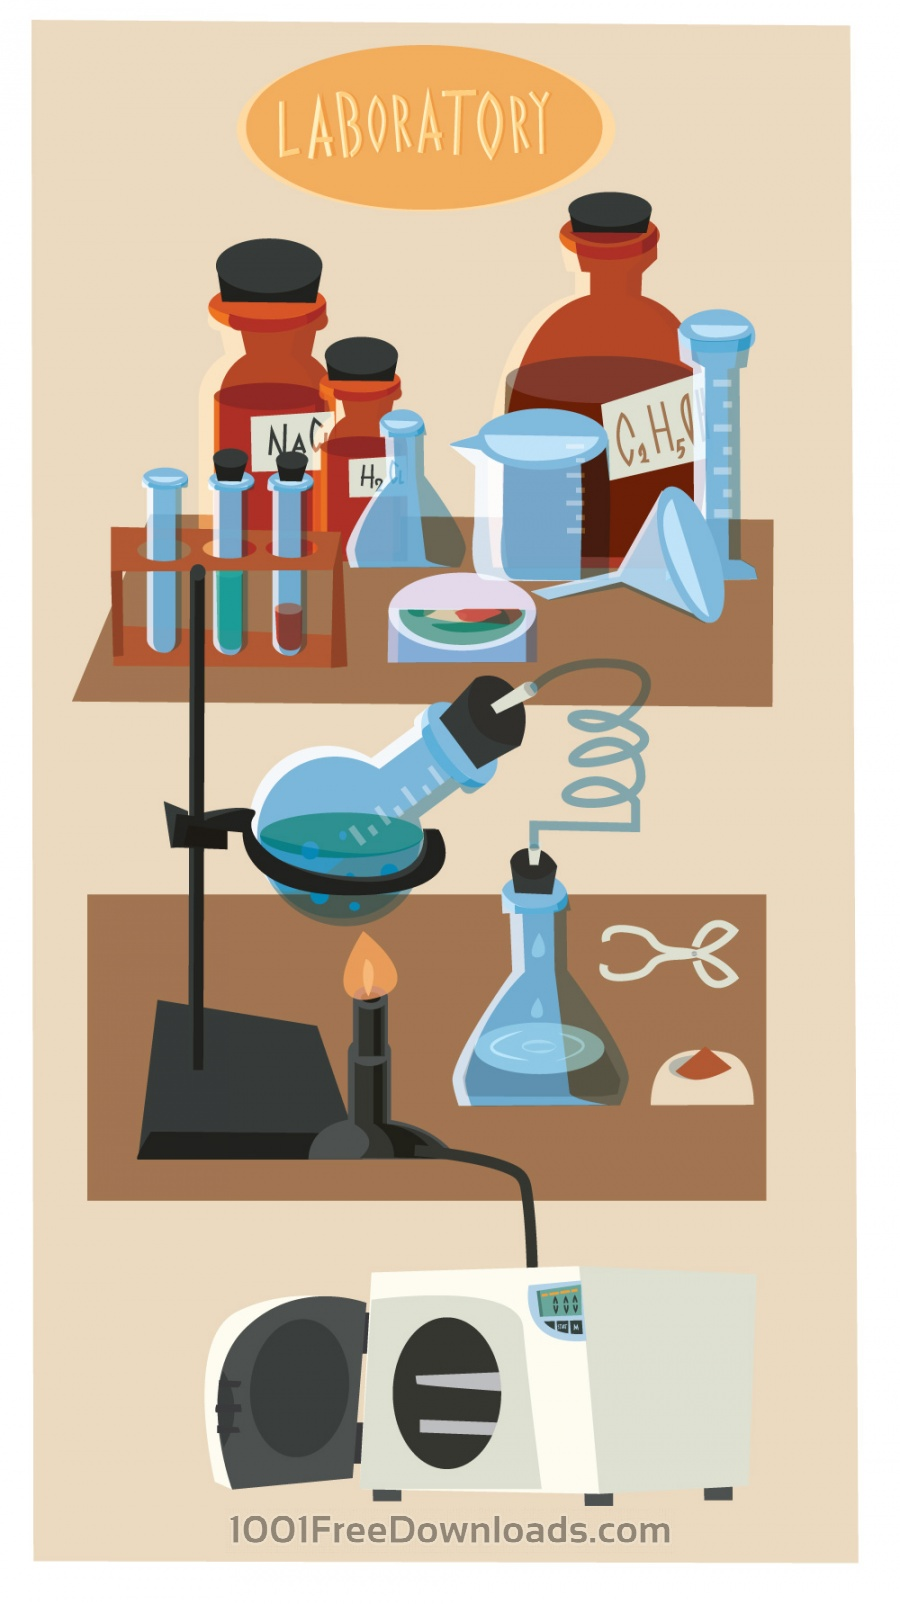 Free Vectors: Chemical objects and tubes illustration vector | Design